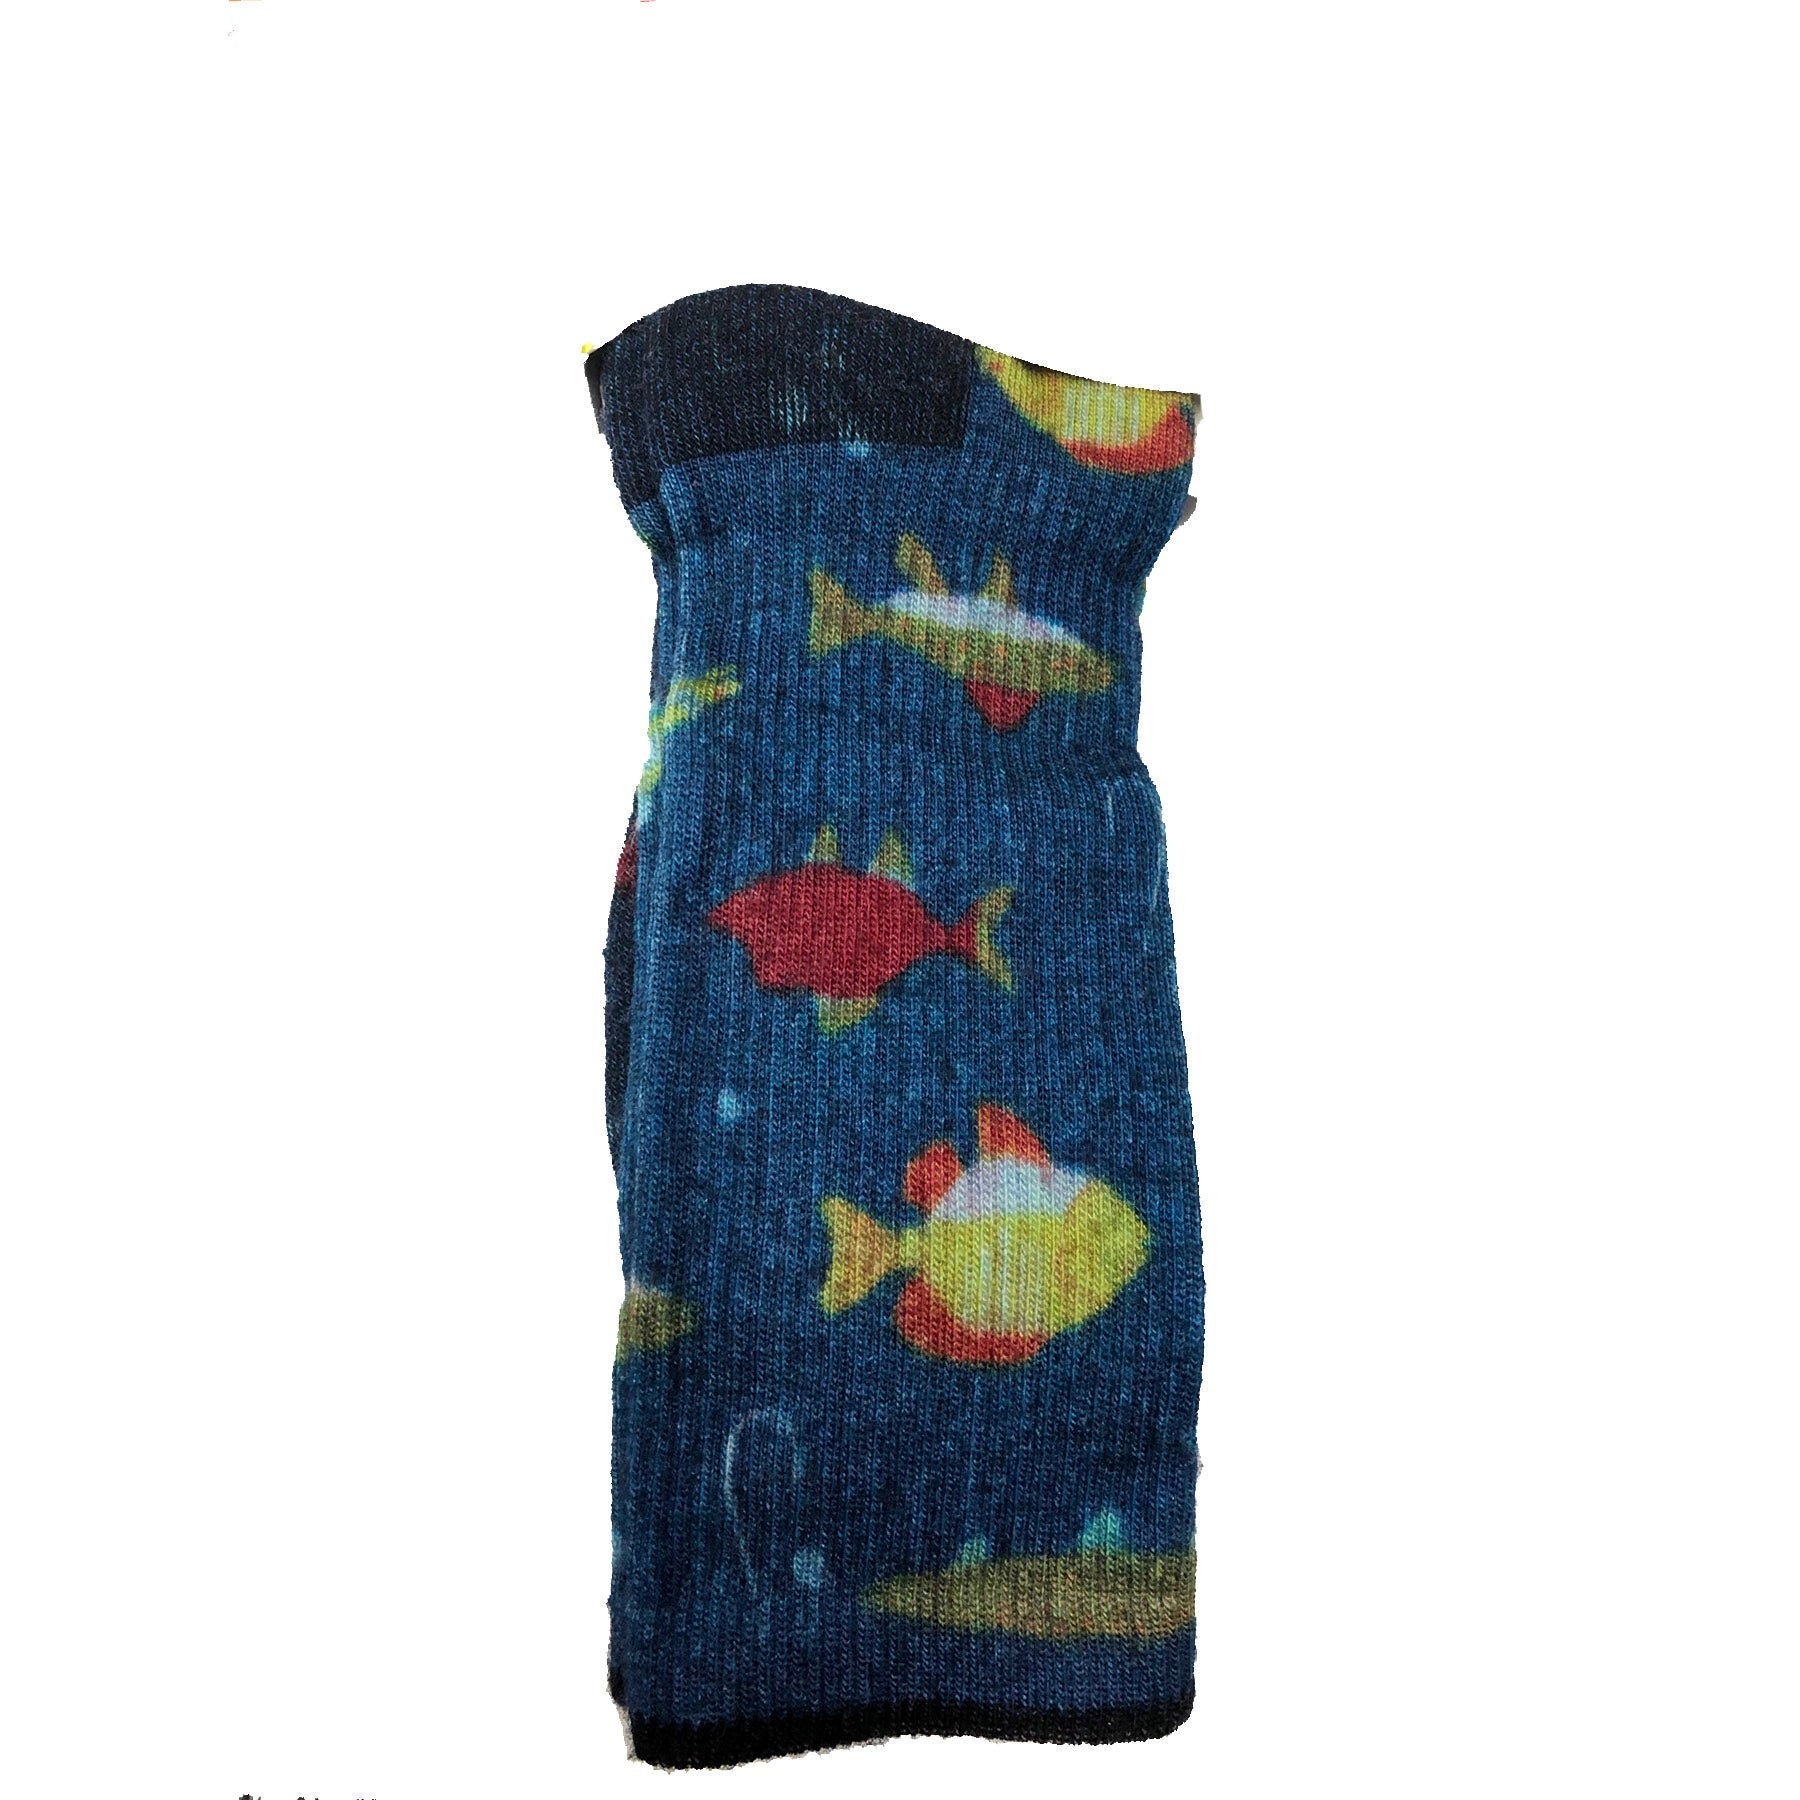 overall dark blue pattern with small yellow and orange fish print